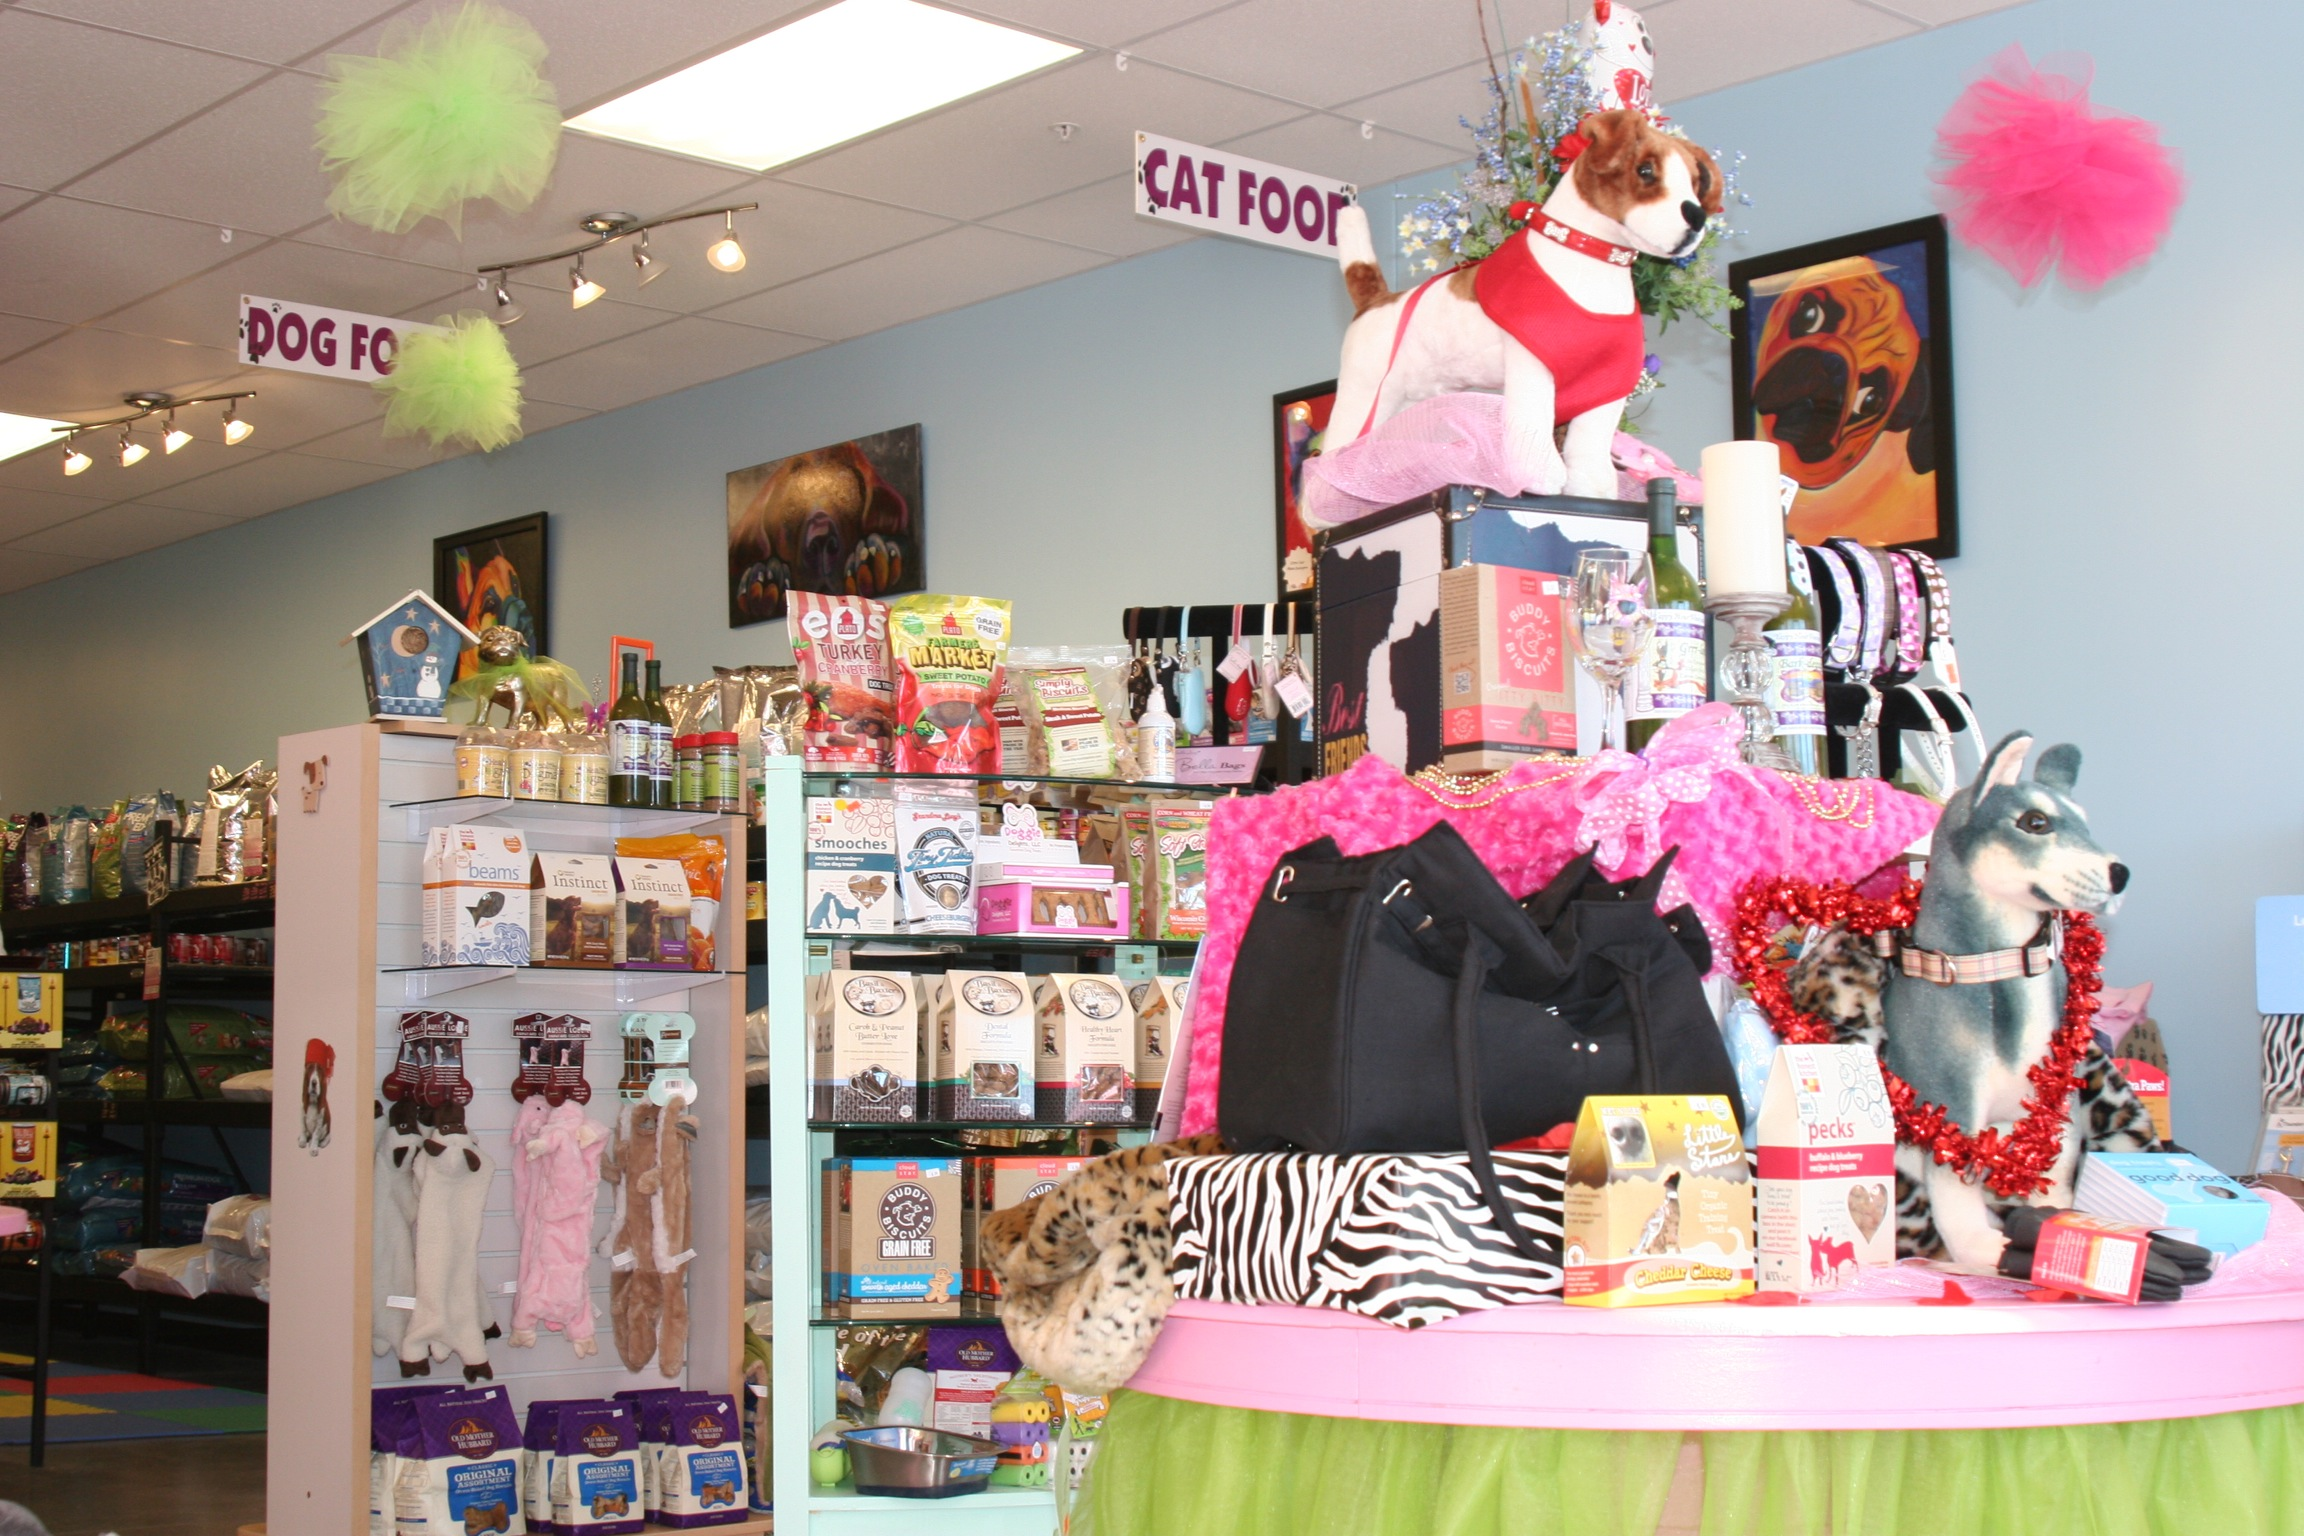 Colorado springs furry friends inc opens new breed of pet store colorado springs furry friends inc opens new breed of pet store join us for our grand opening party of our new boutique style store and self serve dog solutioingenieria Choice Image